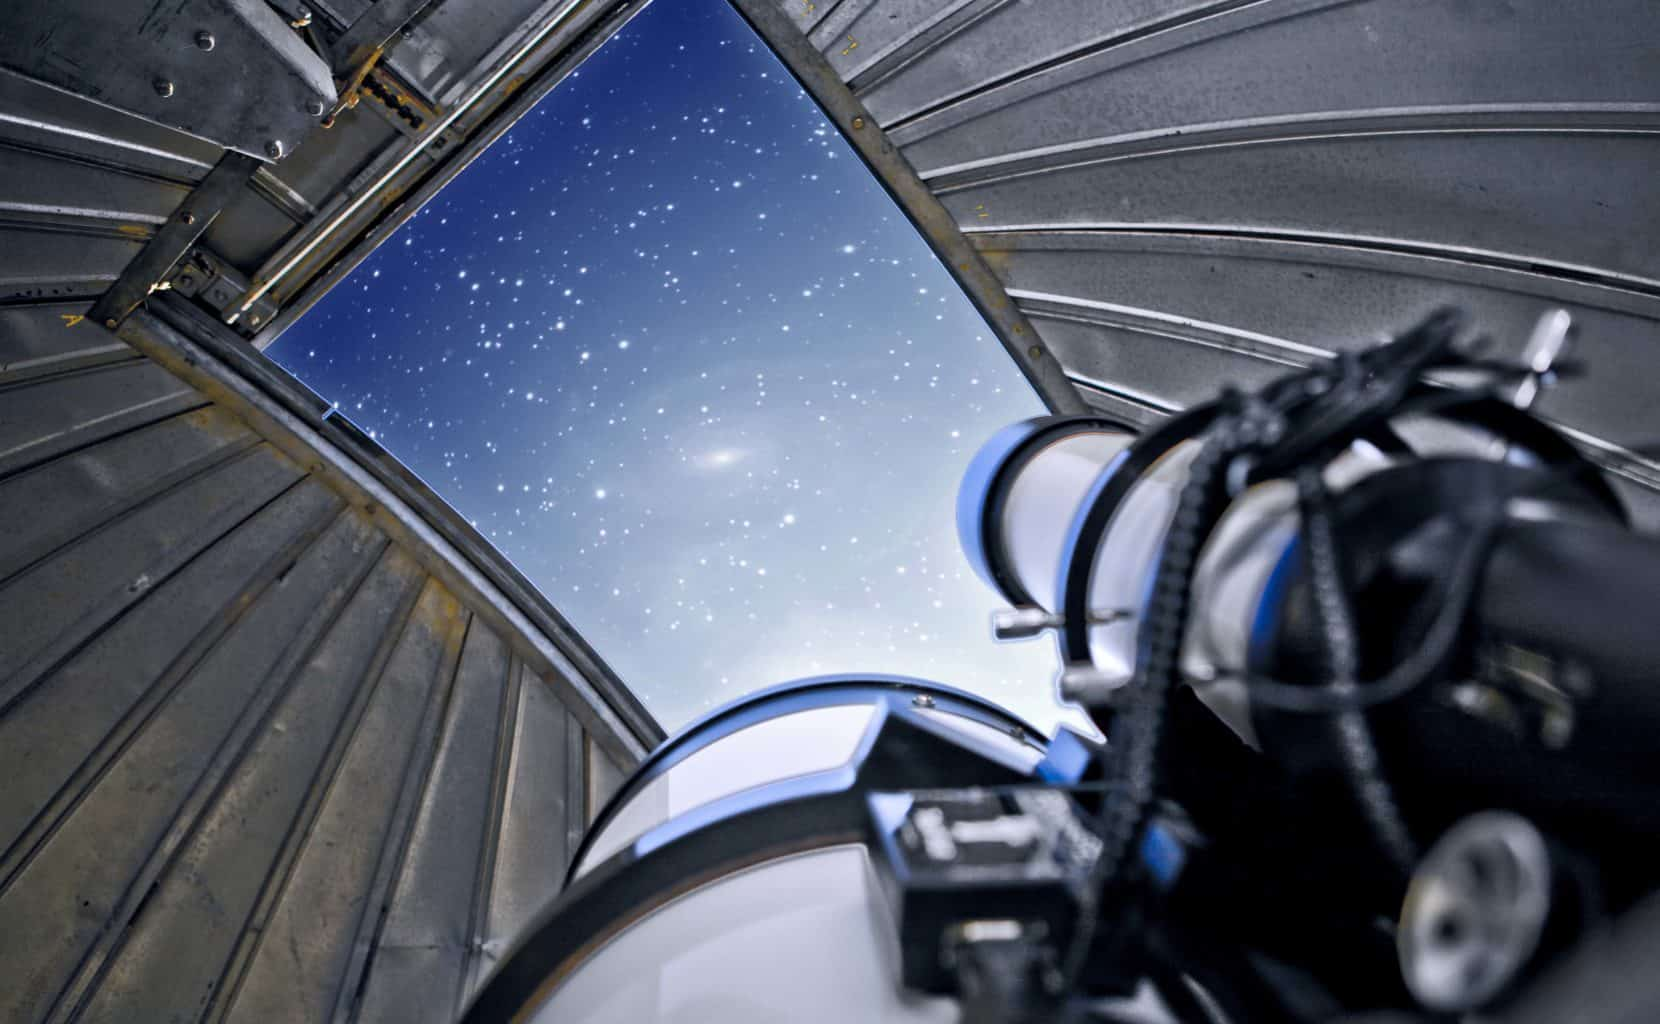 Image of telescope and stars.